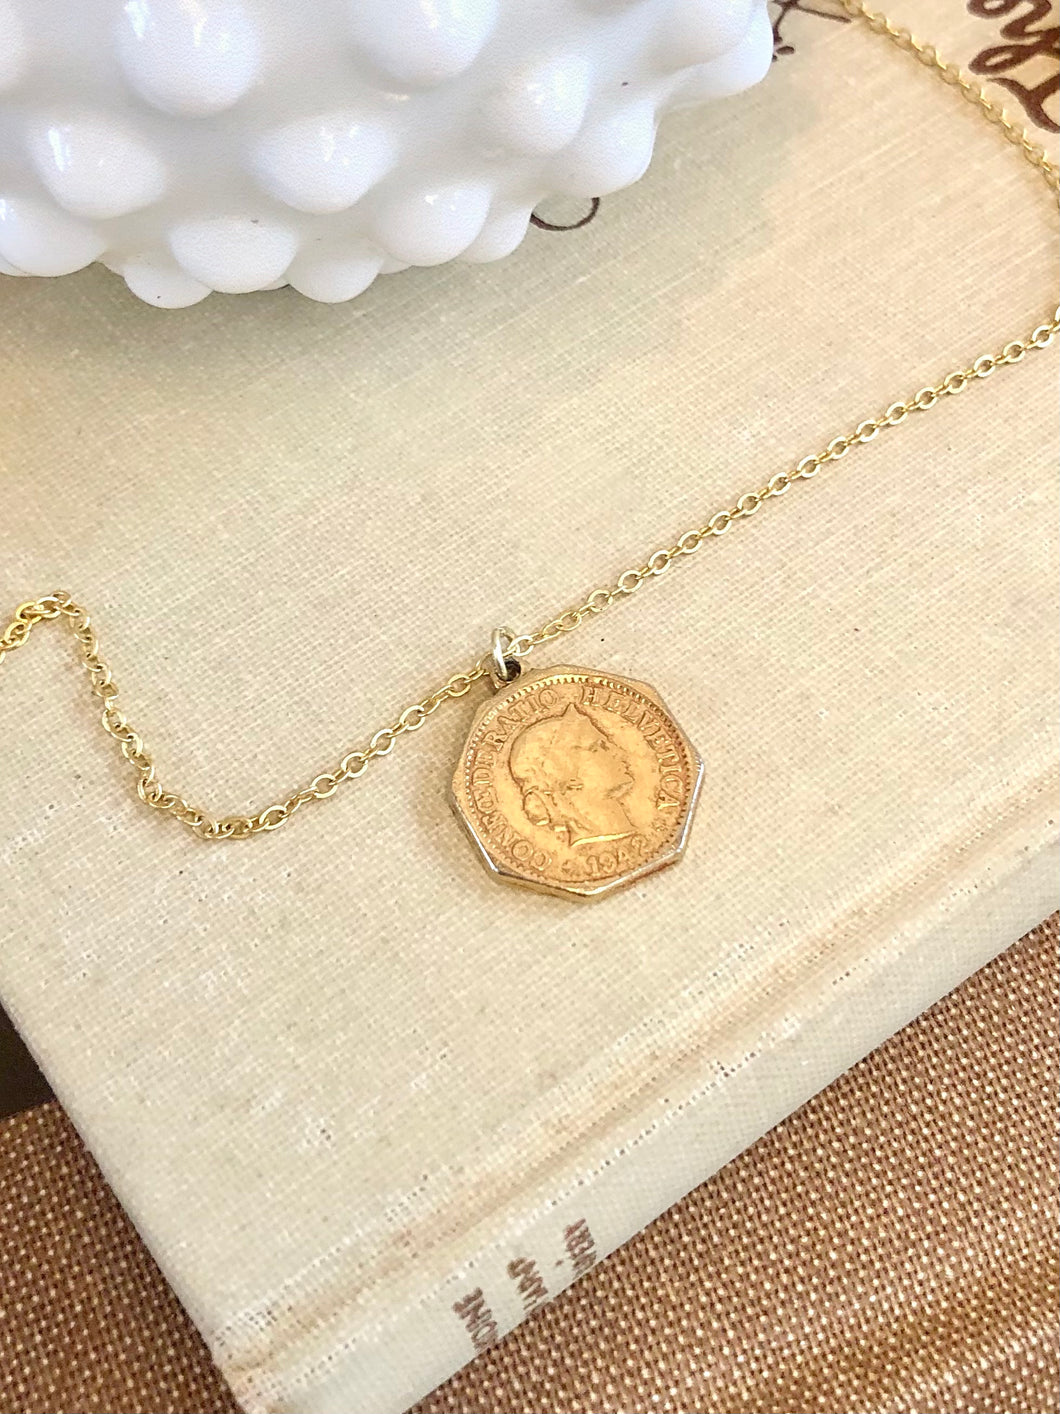 Swiss Coin Necklace